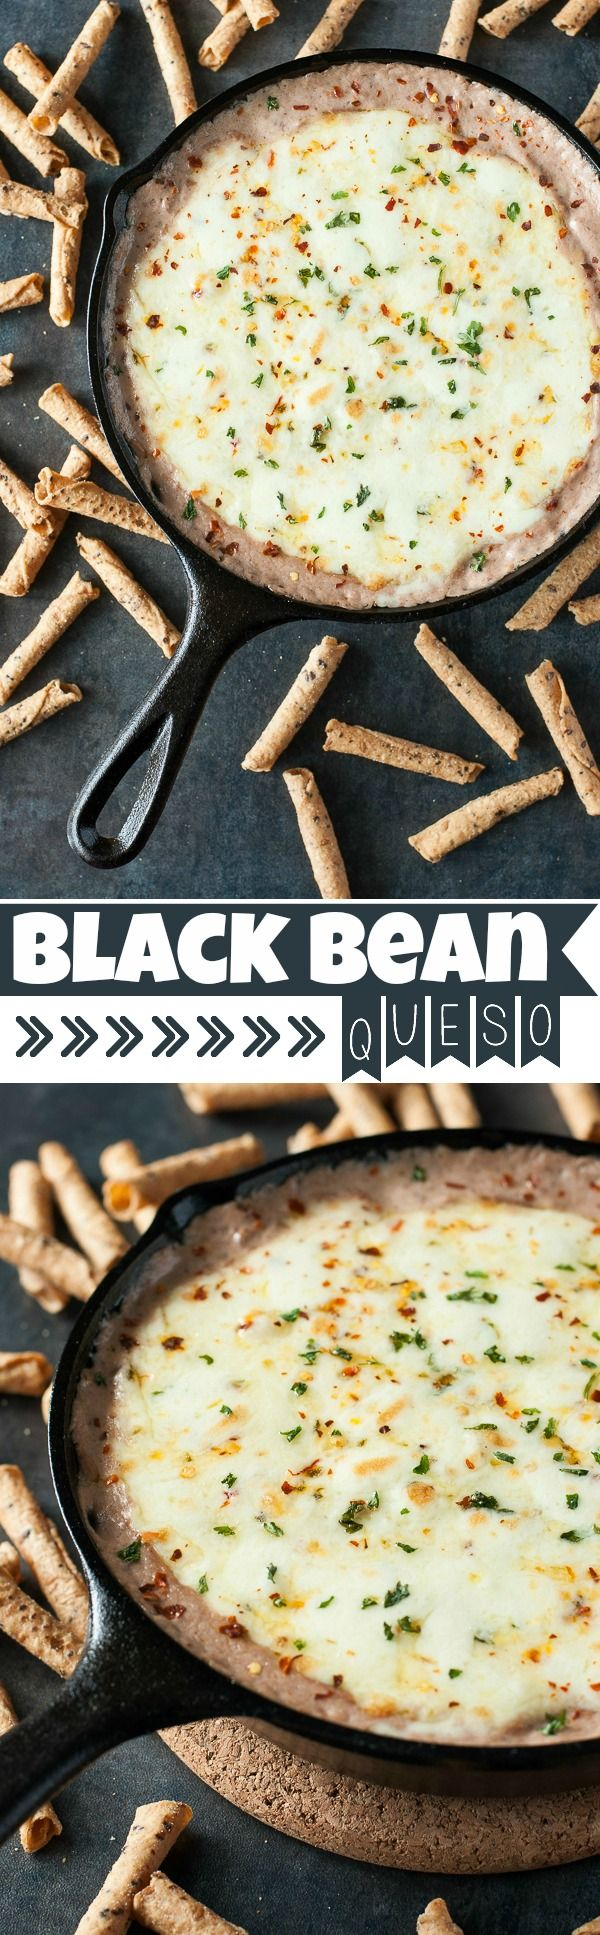 Black Bean Queso :: bold black beans and cheesy pepper jack are a match made in dipping heaven! Everyone loves this easy cheesy black bean dip!